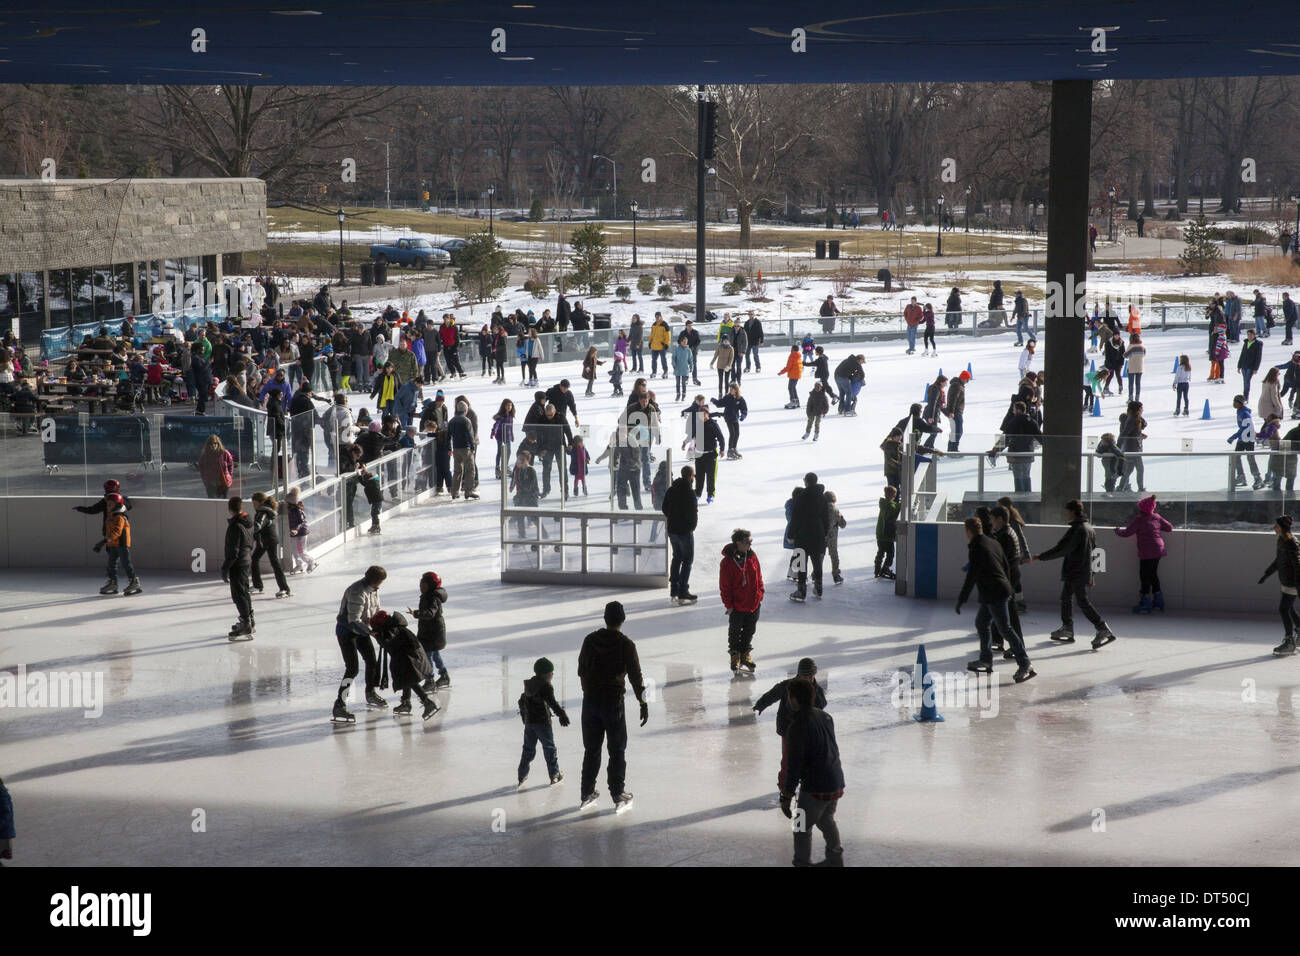 Ice skaters enjoy a day at the skating rink in Prospect Park, Brooklyn, NY. - Stock Image